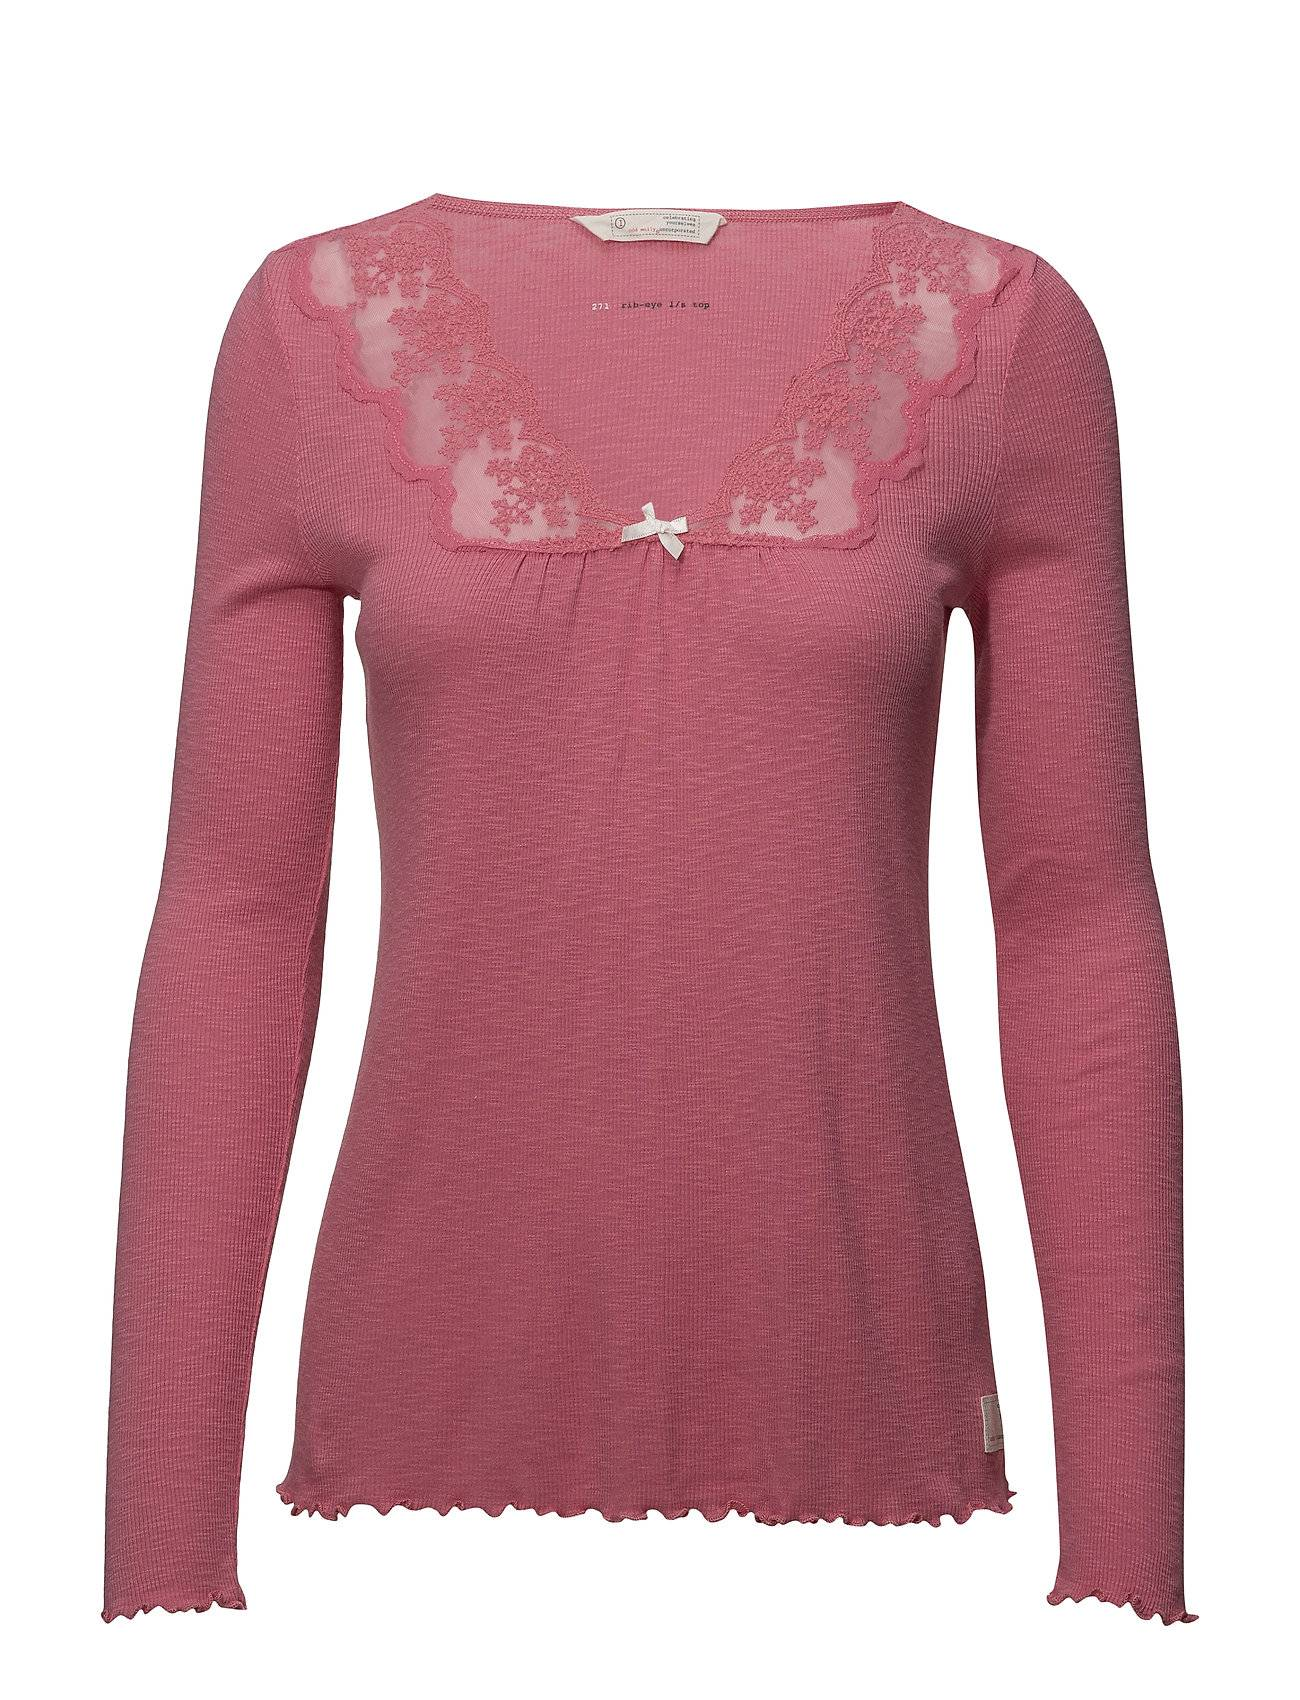 Image of ODD MOLLY Rib-Eye L/S Top T-shirts & Tops Long-sleeved Vaaleanpunainen ODD MOLLY